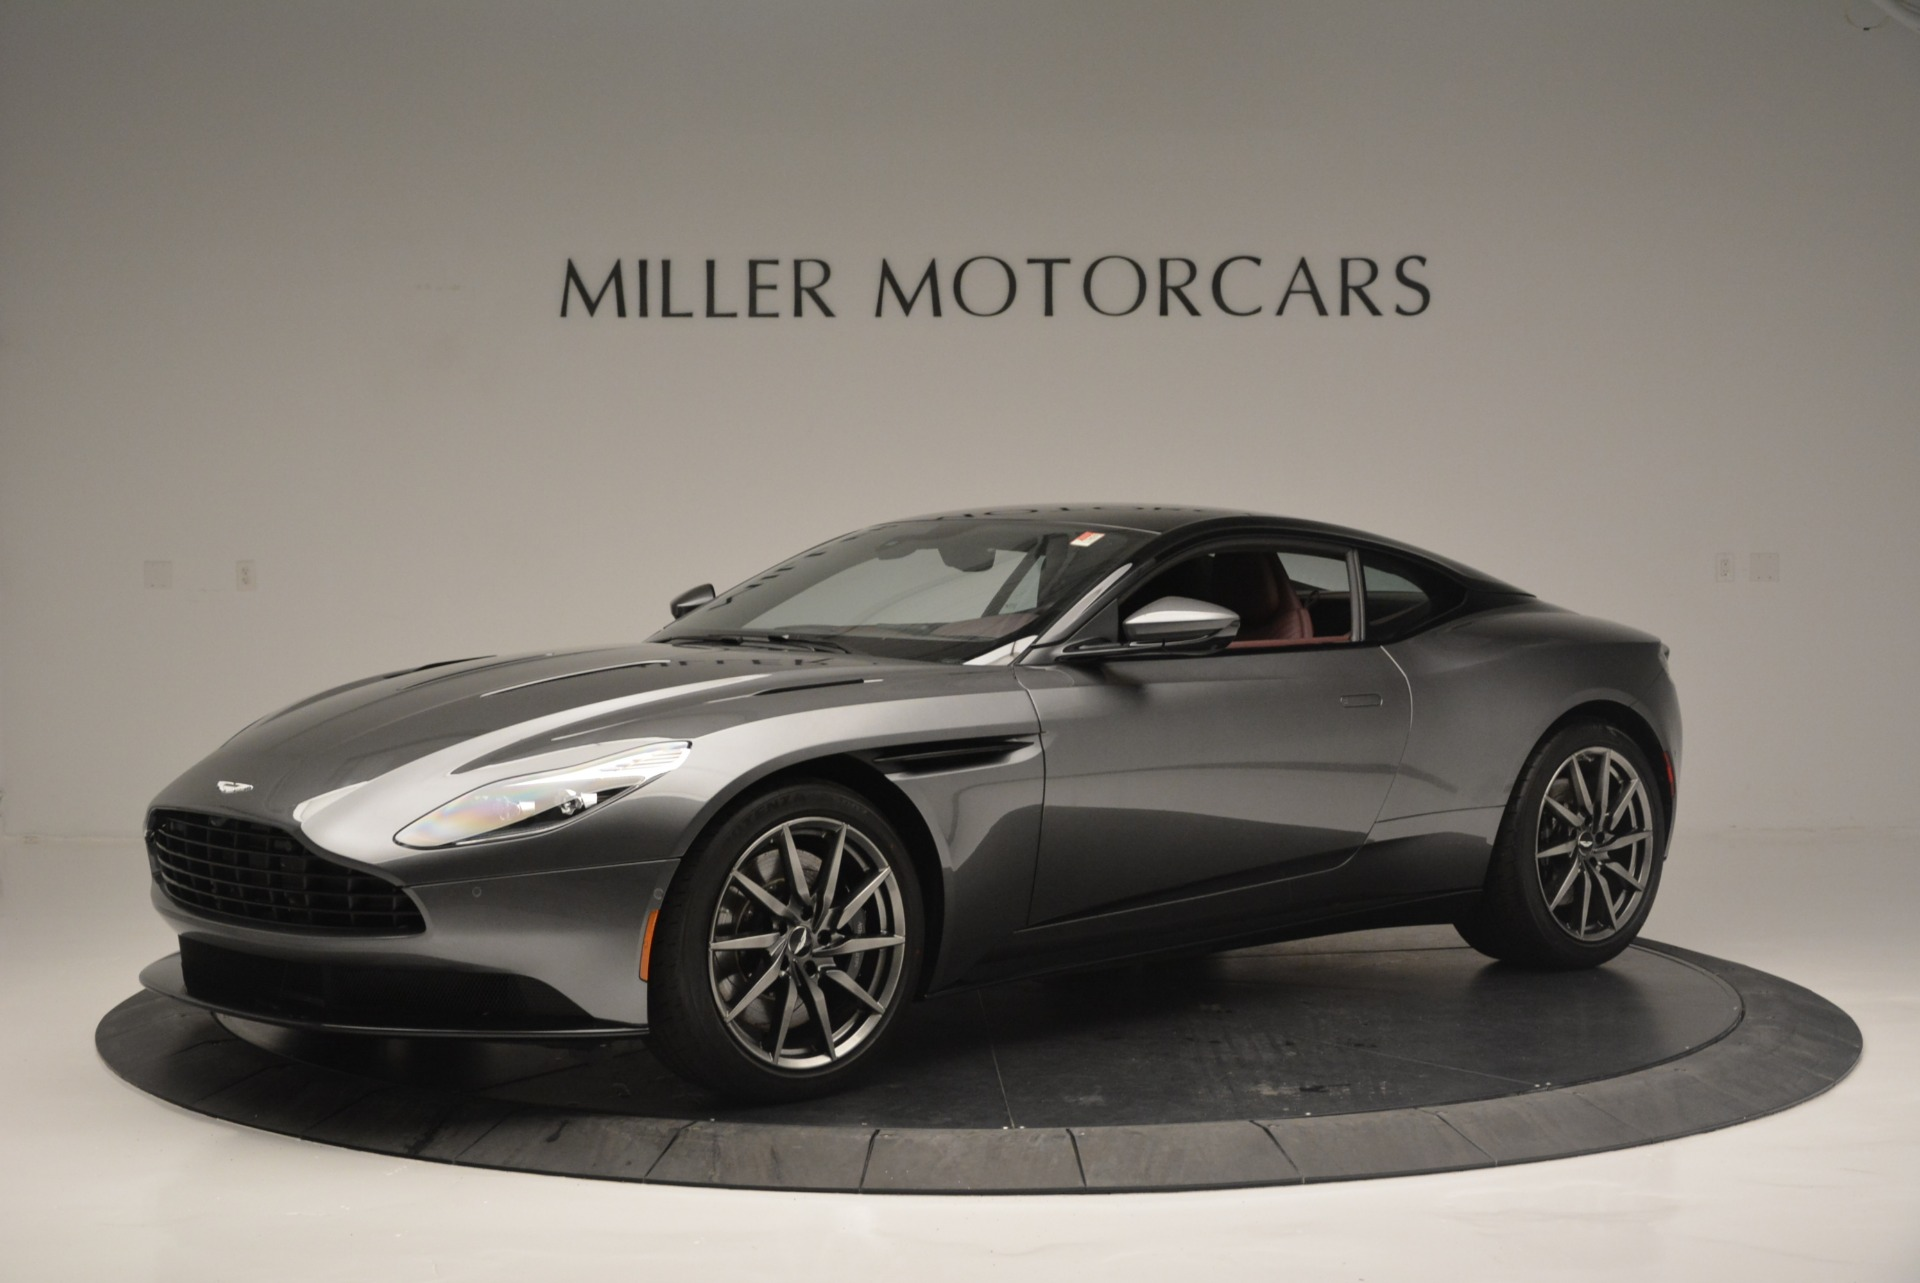 New 2018 Aston Martin DB11 V12 Coupe for sale Sold at Bentley Greenwich in Greenwich CT 06830 1